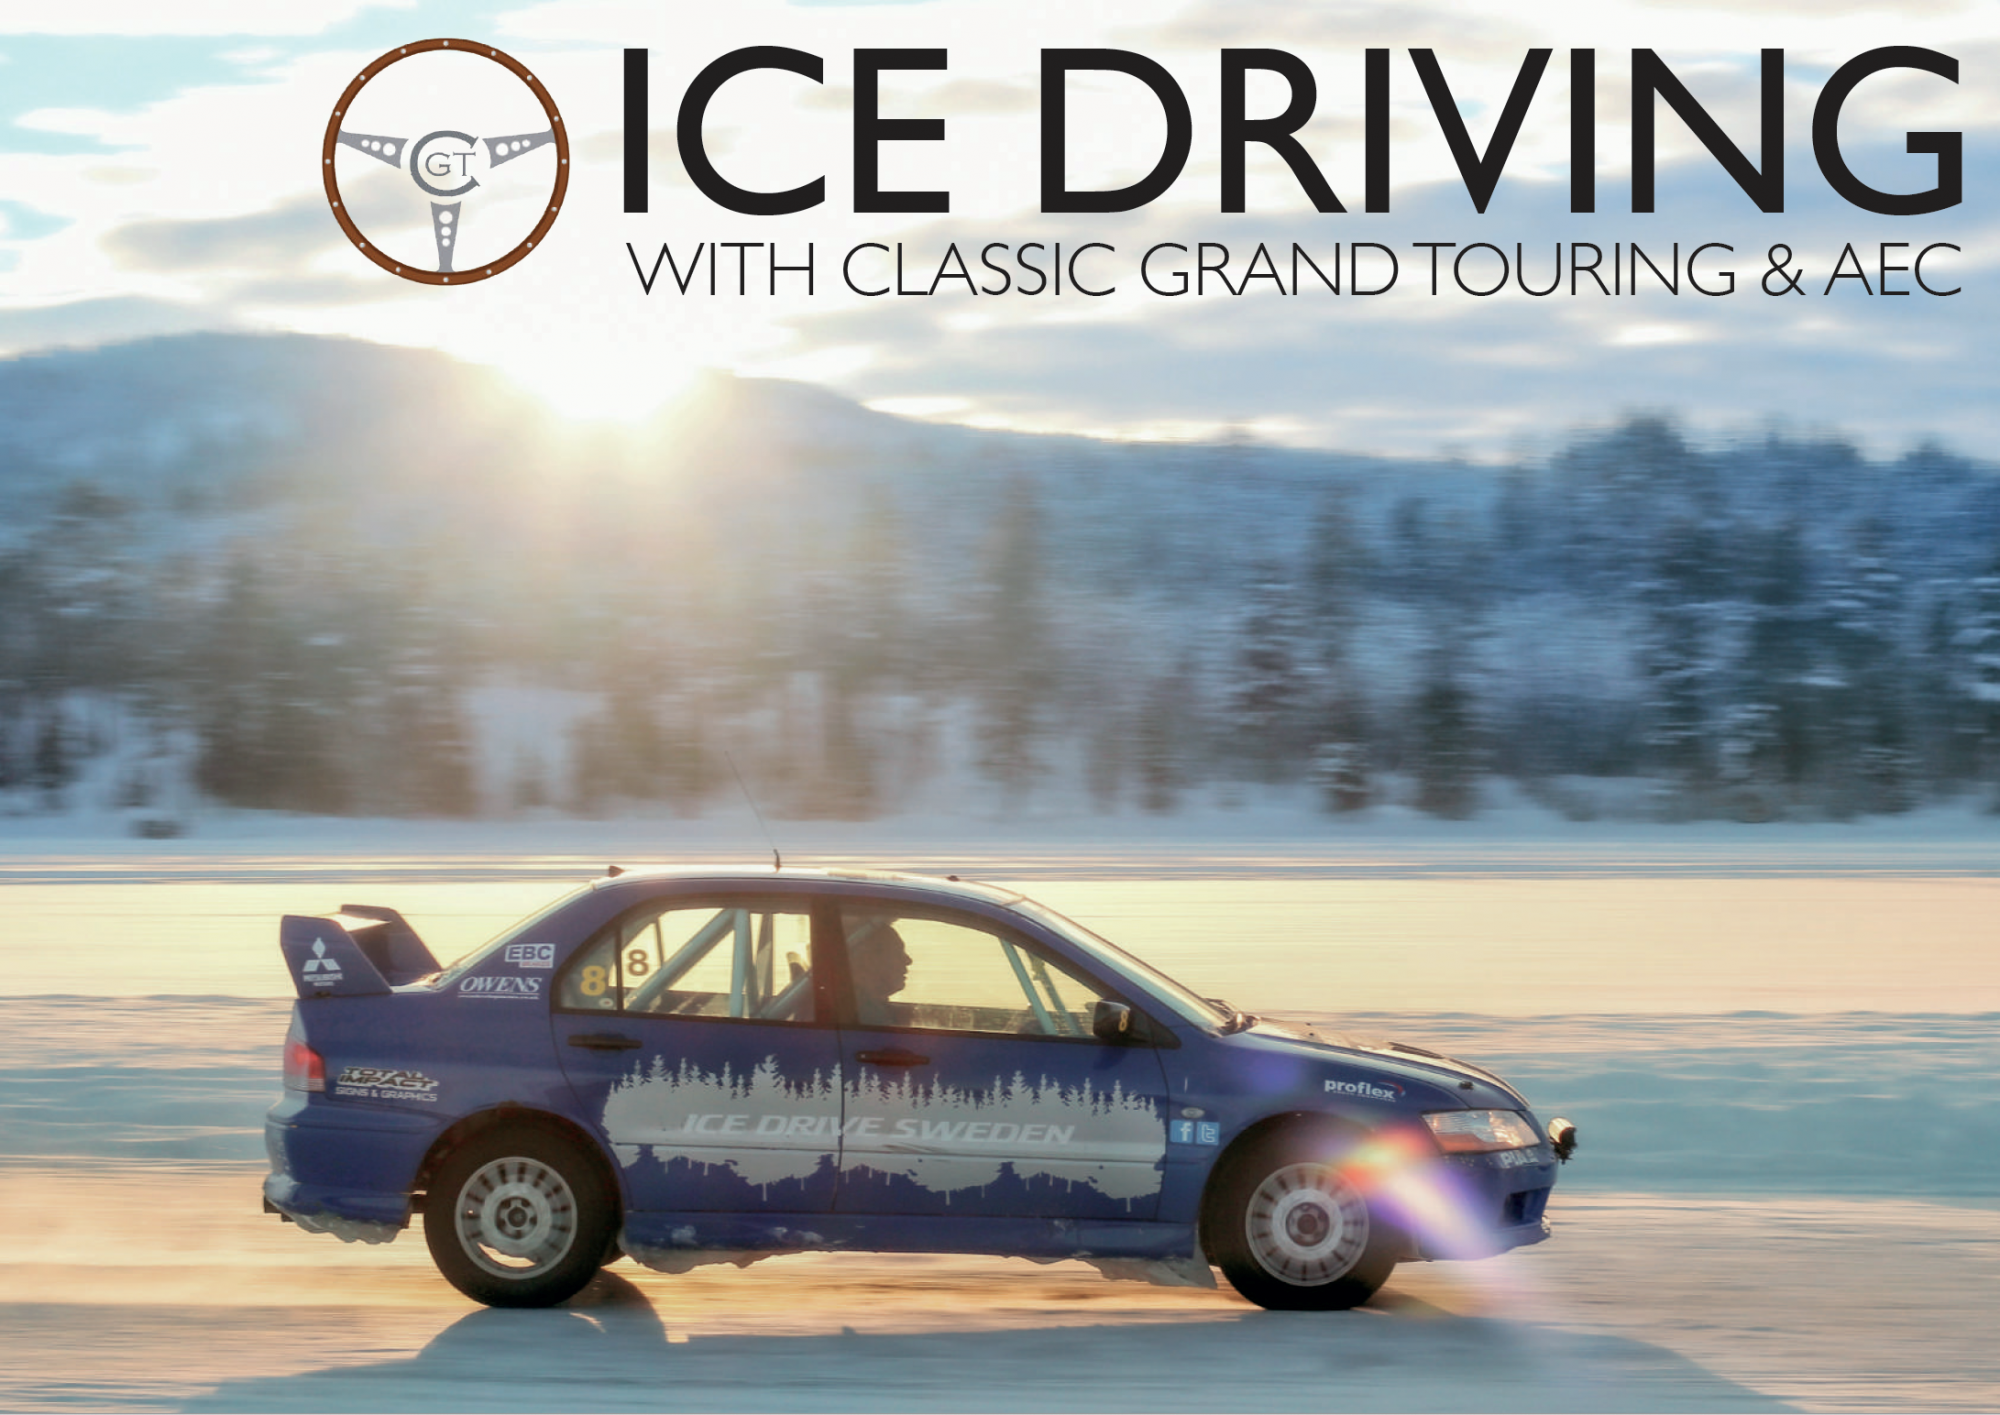 Classic Grand Touring Ice Driving PDF